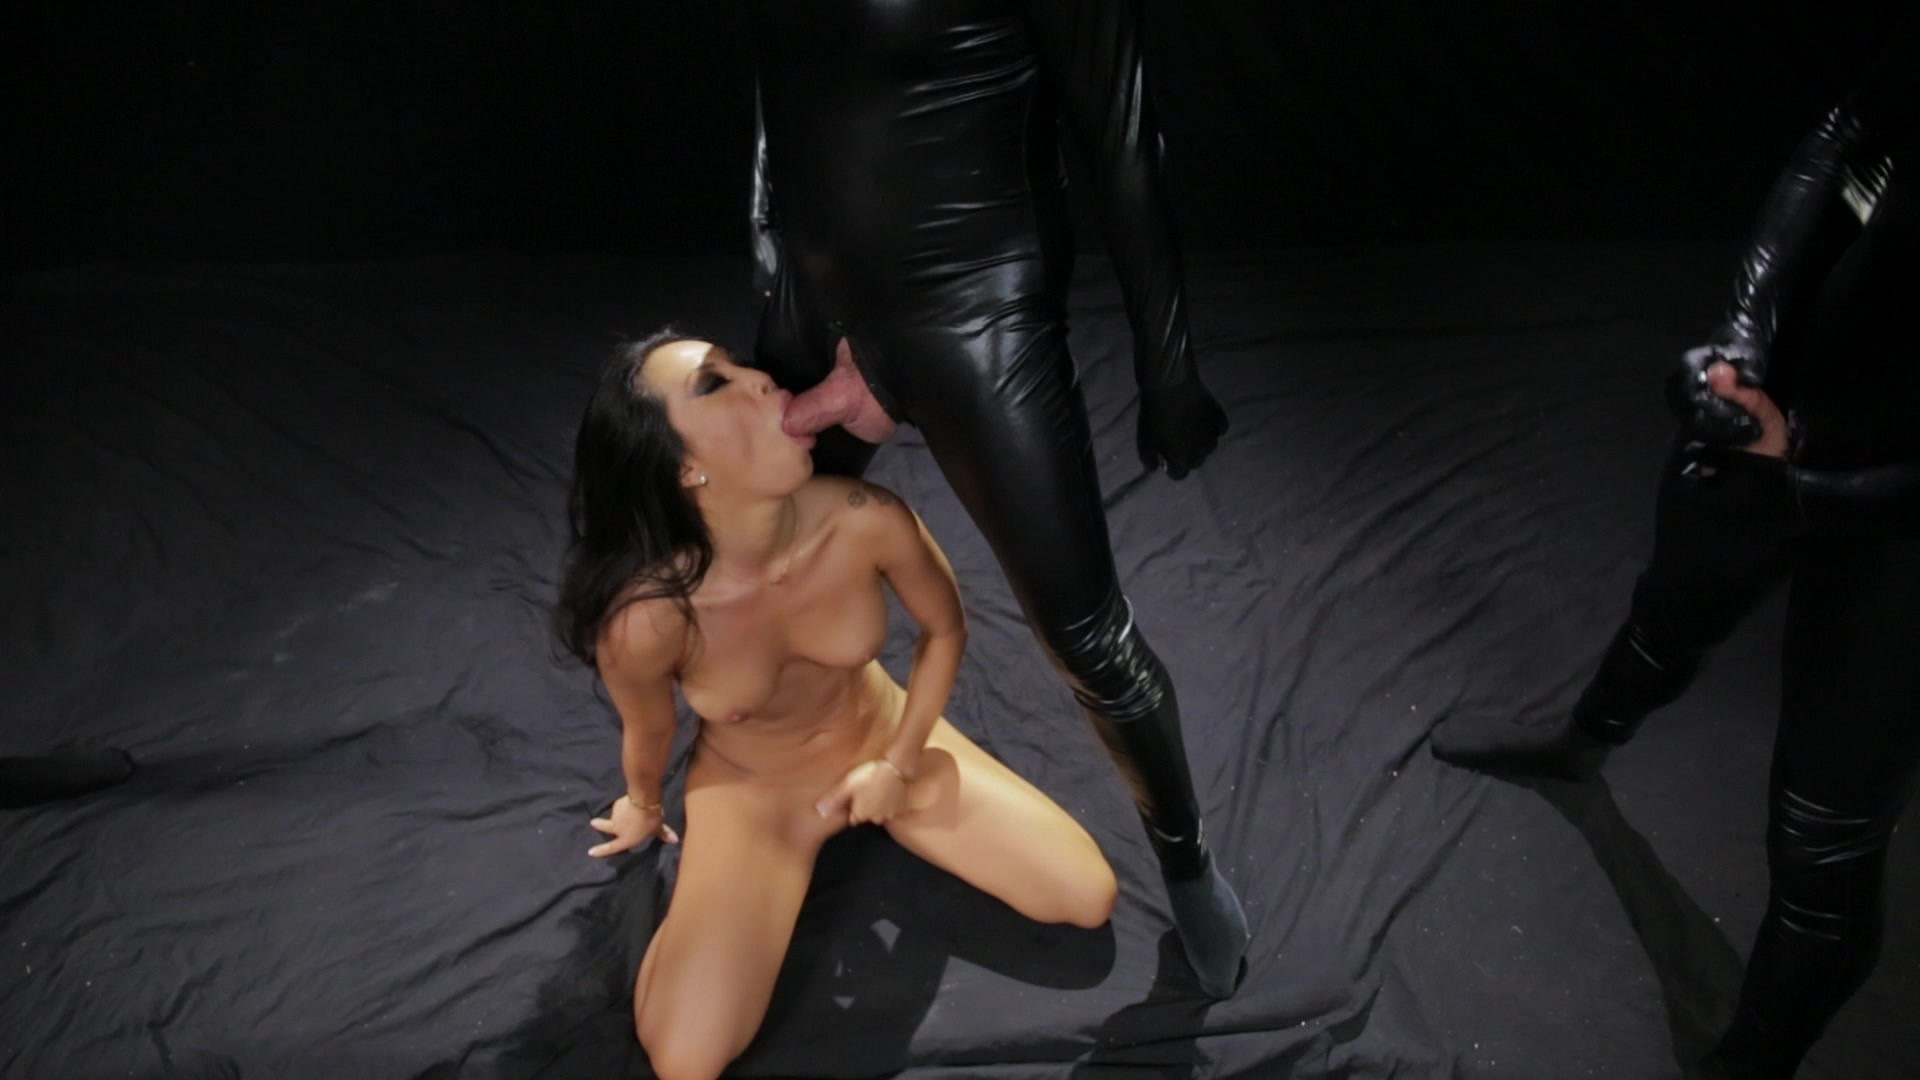 Scene with Asa Akira - image 17 out of 20